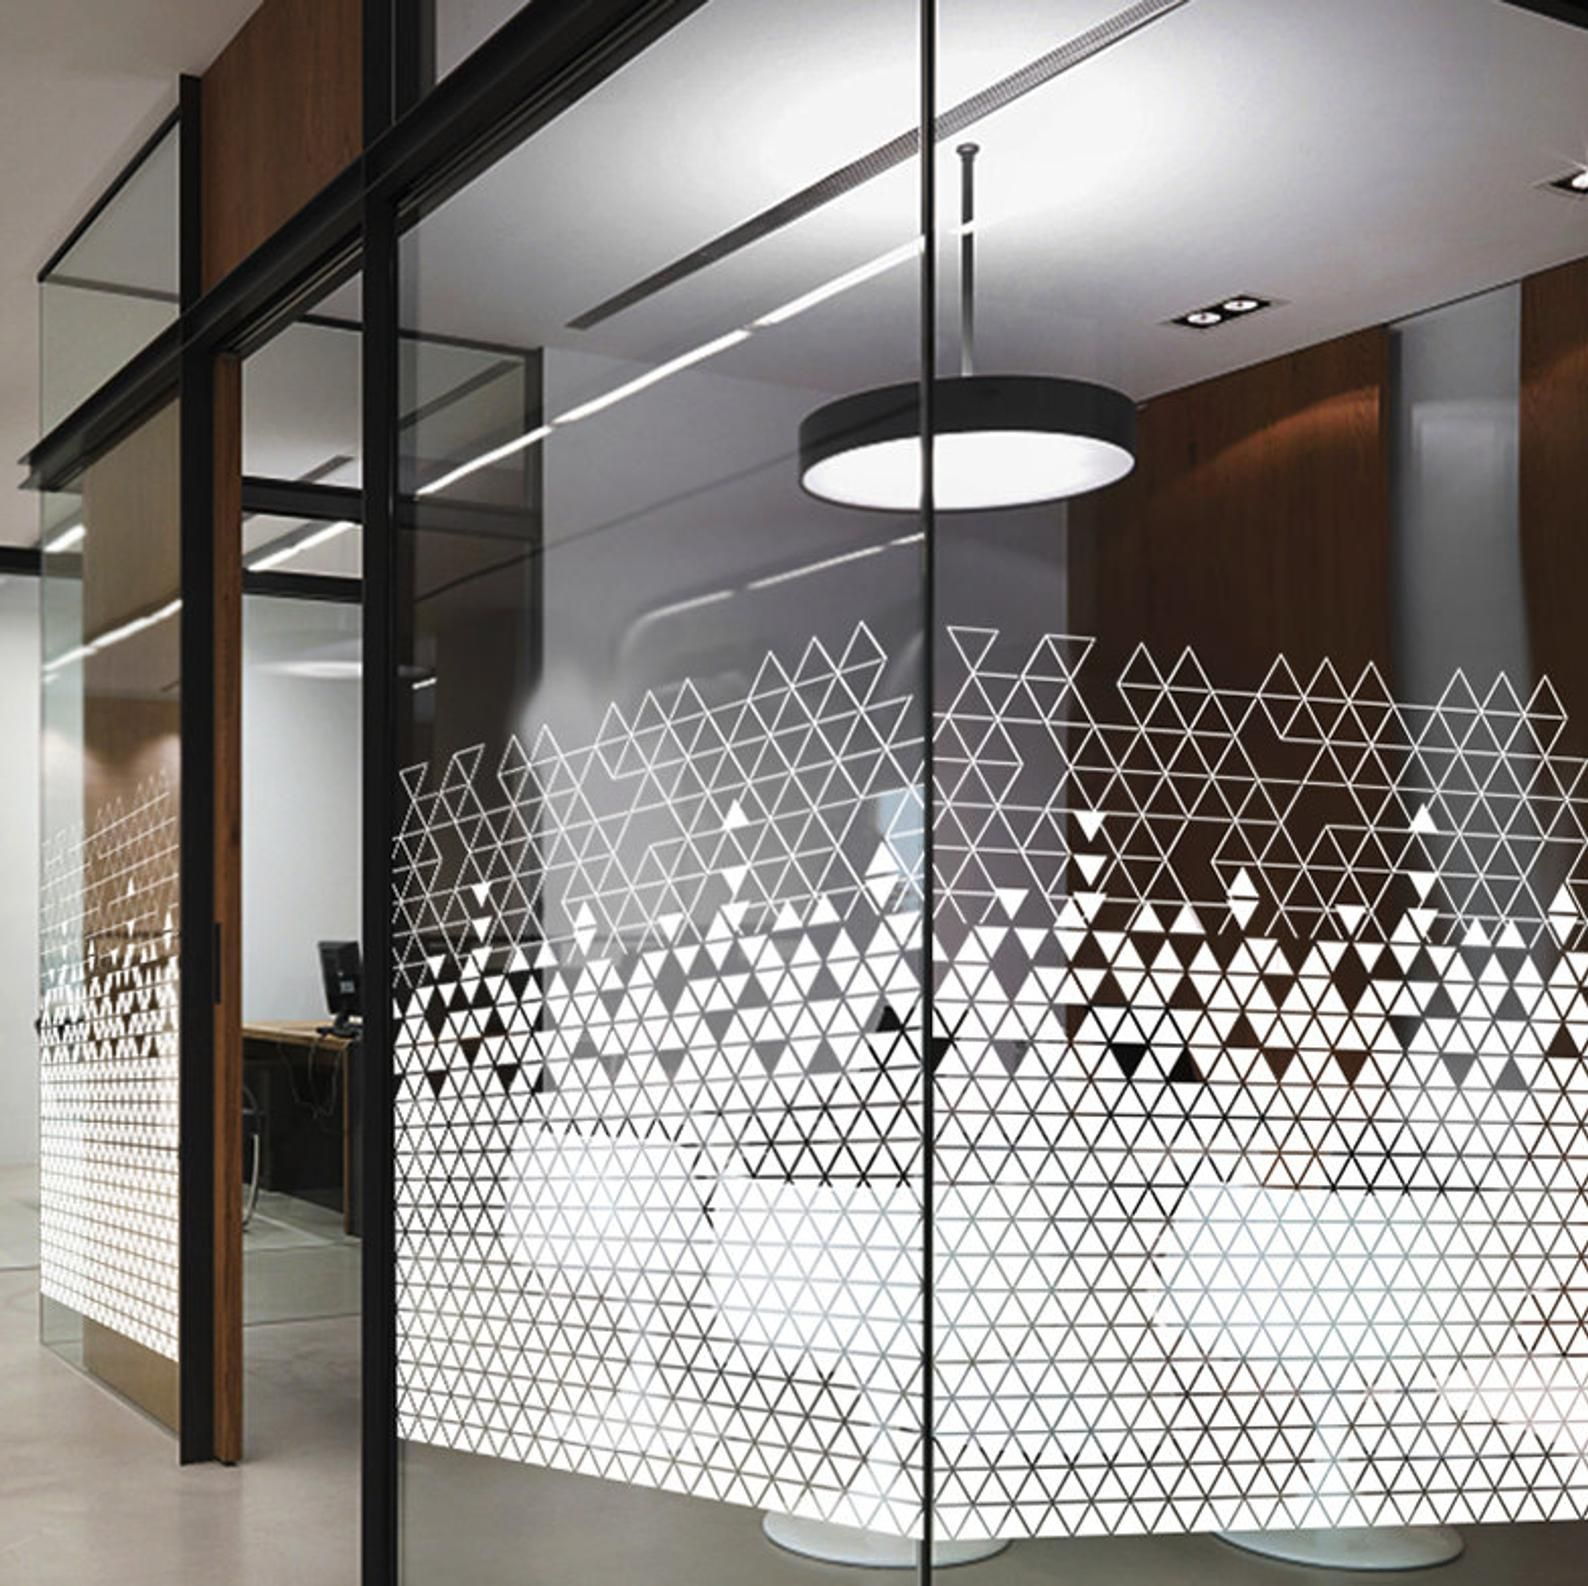 Medical Office Interior Design Ideas Modern Office Interior Design Pictures Office Interior Design In 2020 Glass Sticker Design Door Glass Design Glass Wall Office